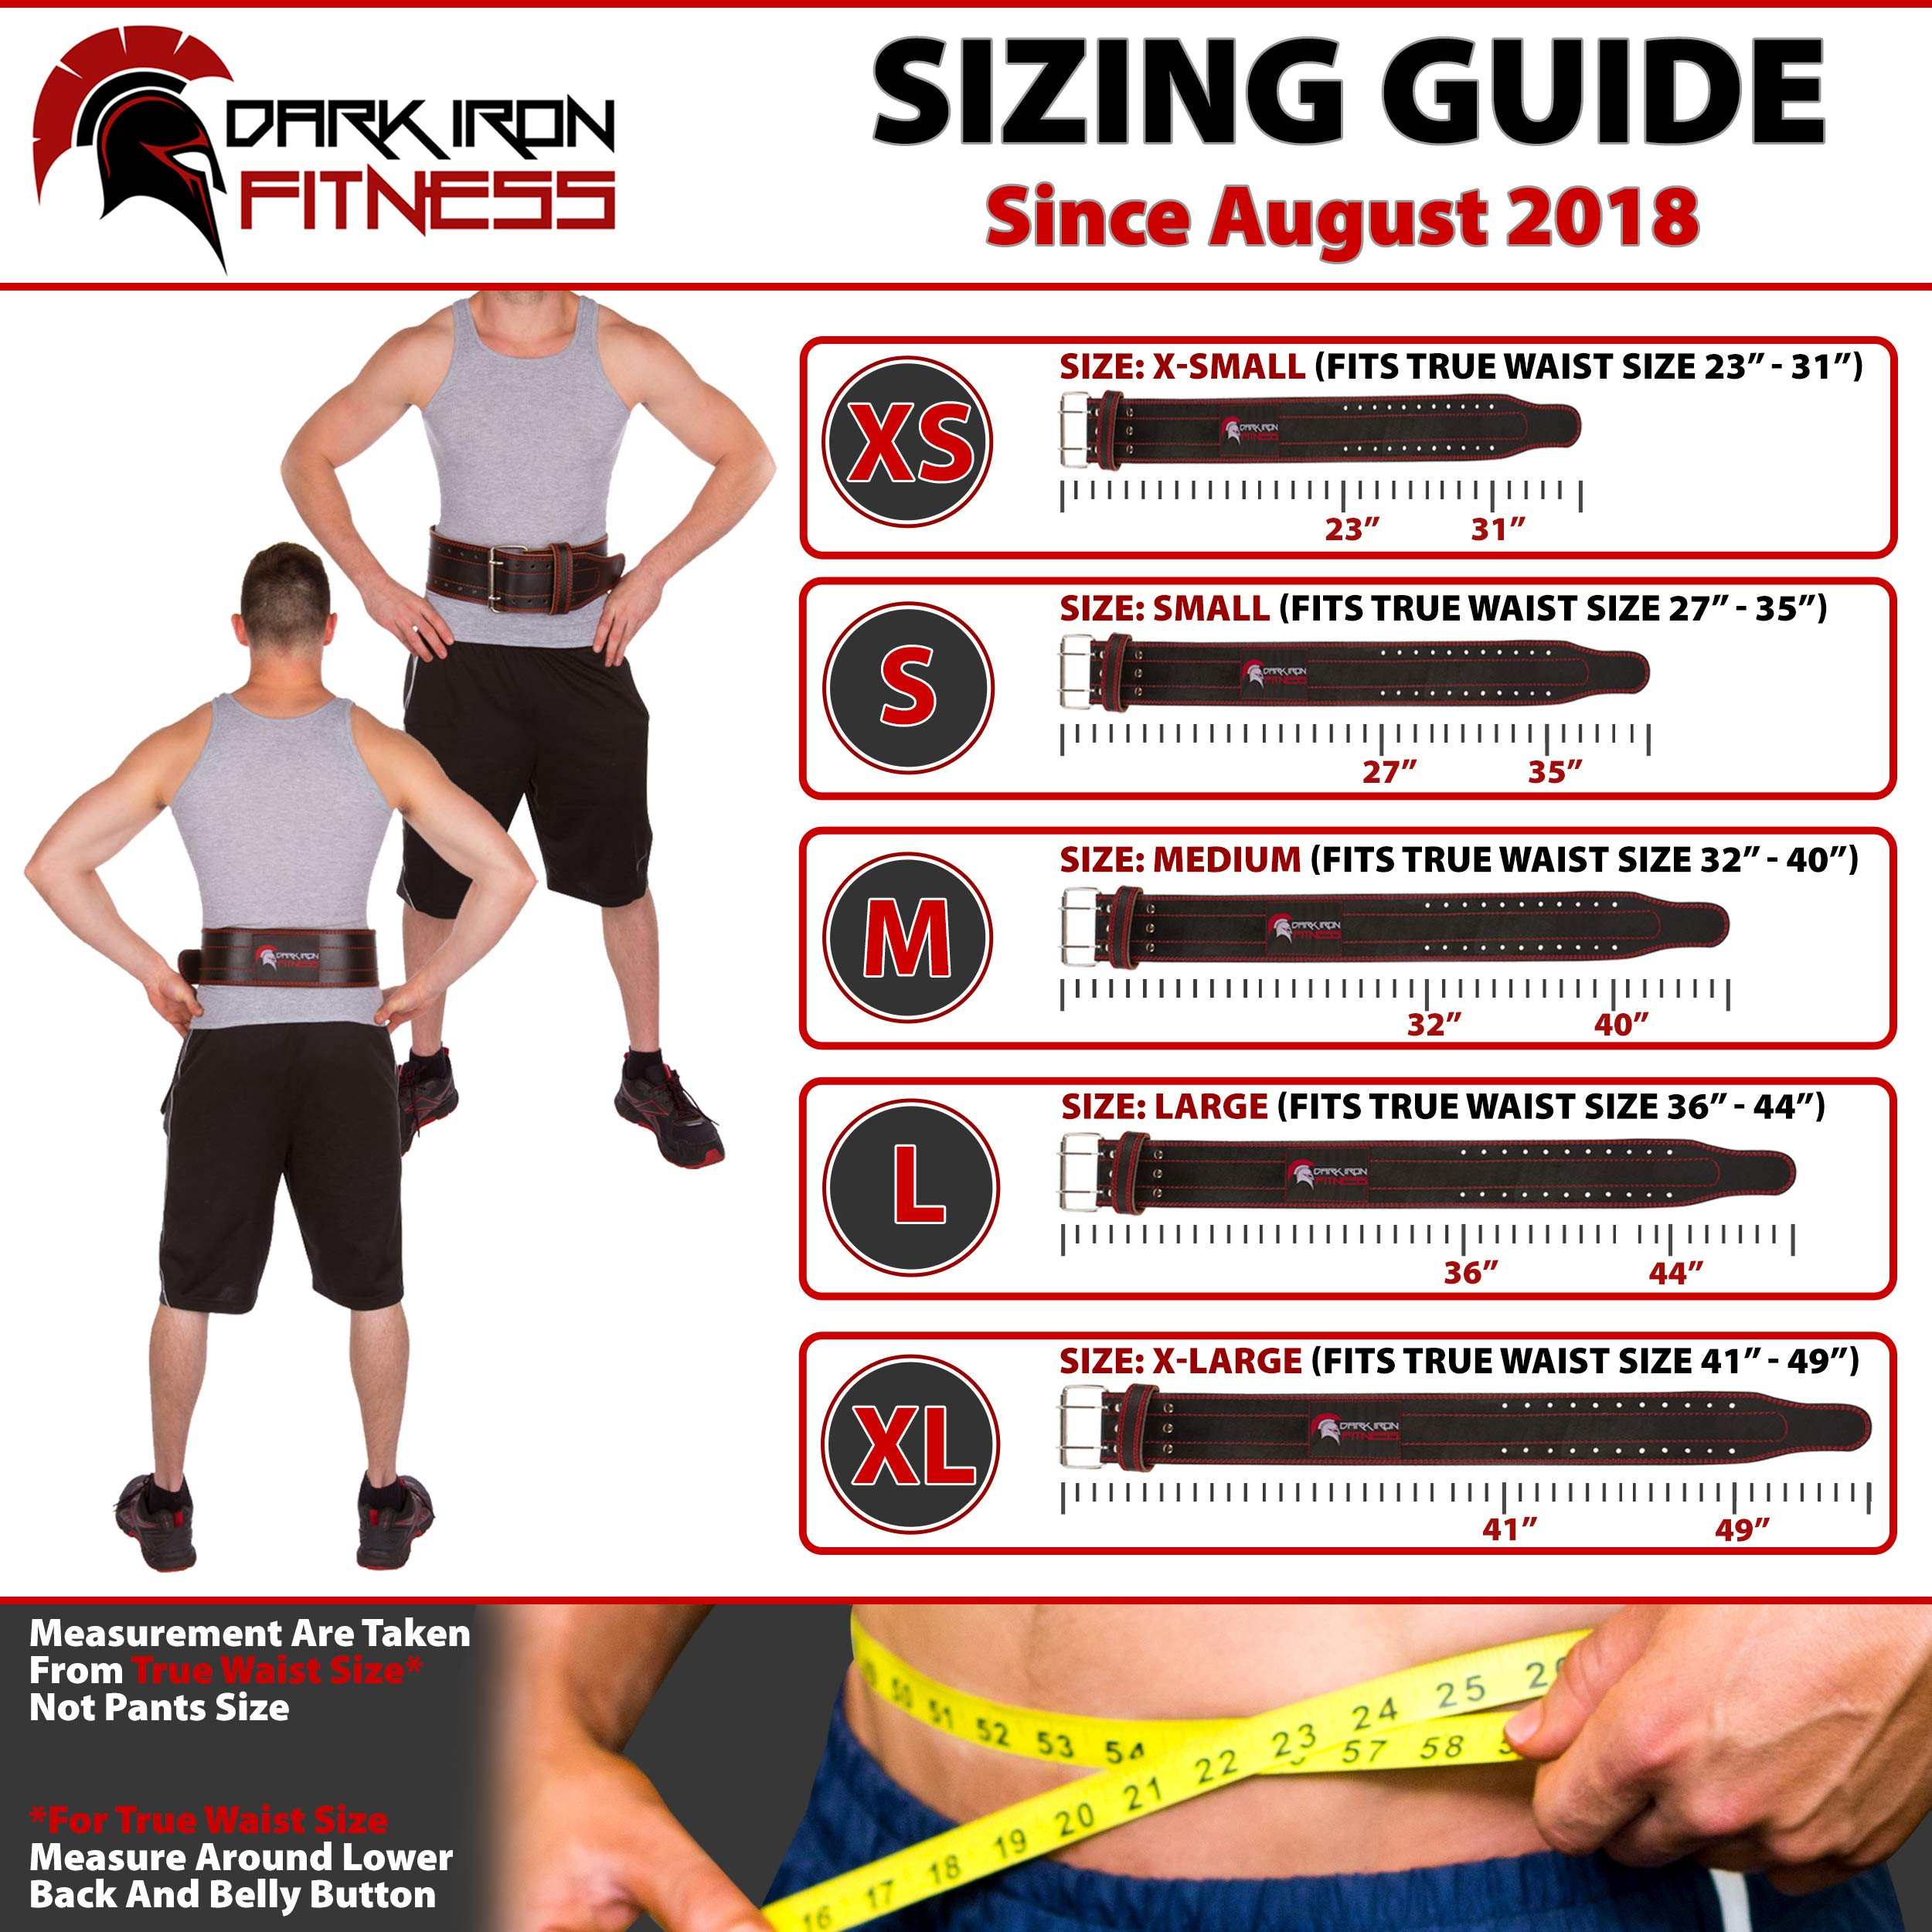 Medium Weight Lifting Belt Powerlifting Belt with Lifting Equipment Weightlifting Belt Body Building Lifting Belt Power Weight Lifting Belt Squat Belt Leather Weightlifting Belt by Dark Iron Fitness (Image #5)